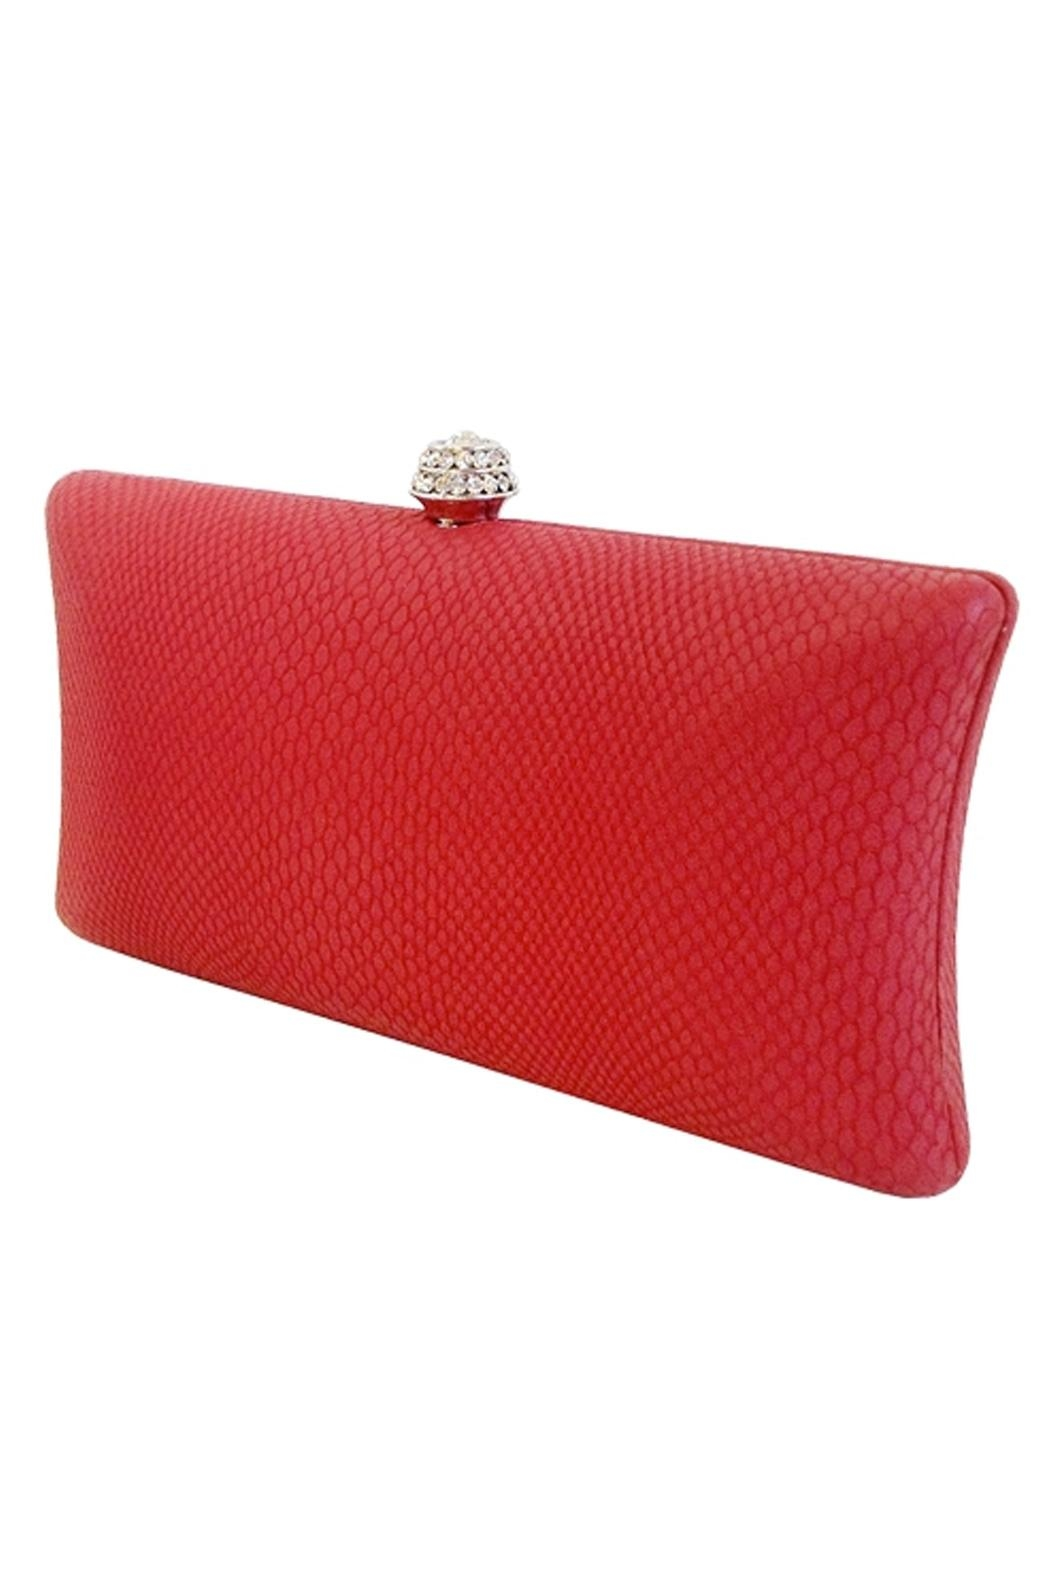 Wild Lilies Jewelry  Red Snakeskin Clutch - Main Image